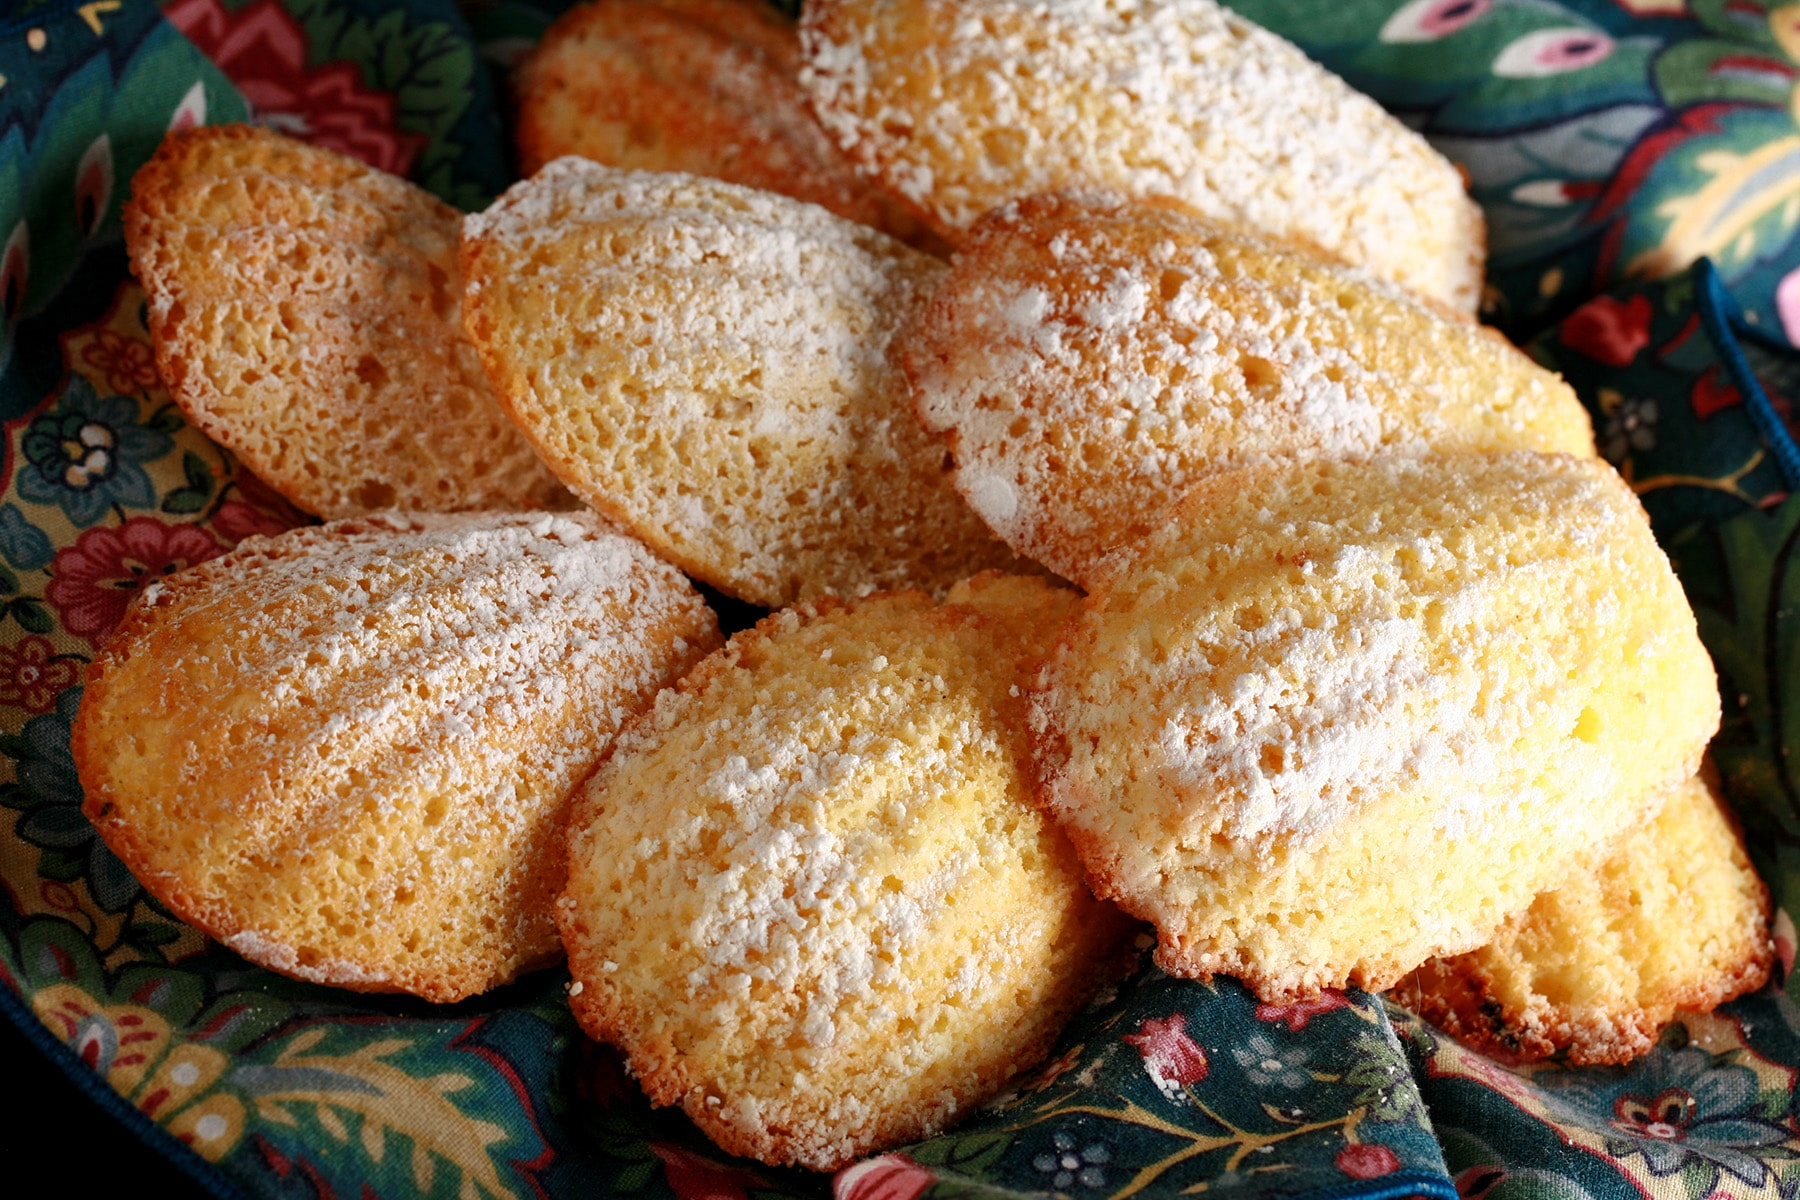 A small pile of sugar dusted Limoncello Madeleines, on a napkin lined plate.